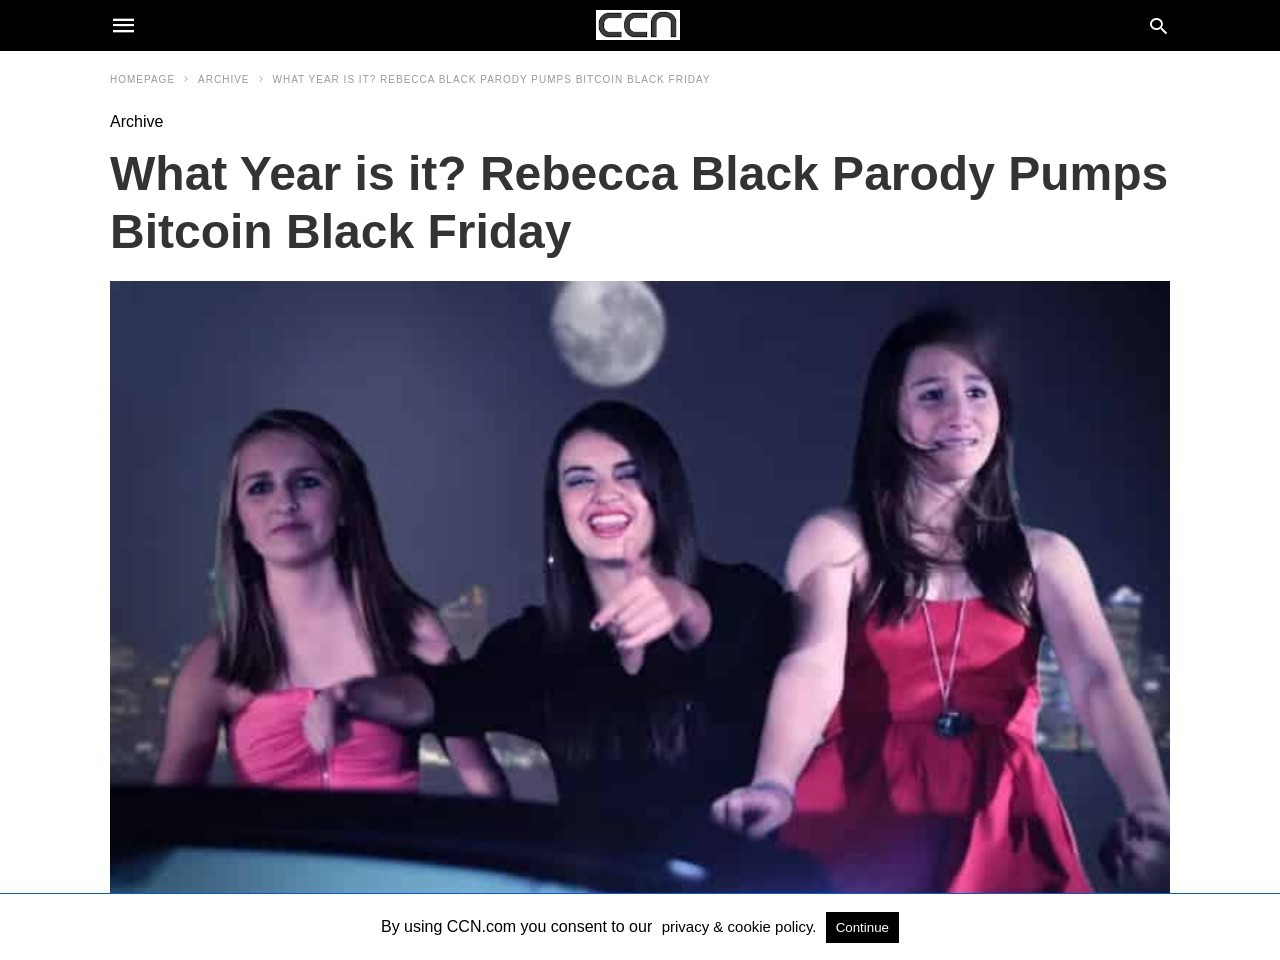 What Year is it? Rebecca Black Parody Pumps Bitcoin Black Friday